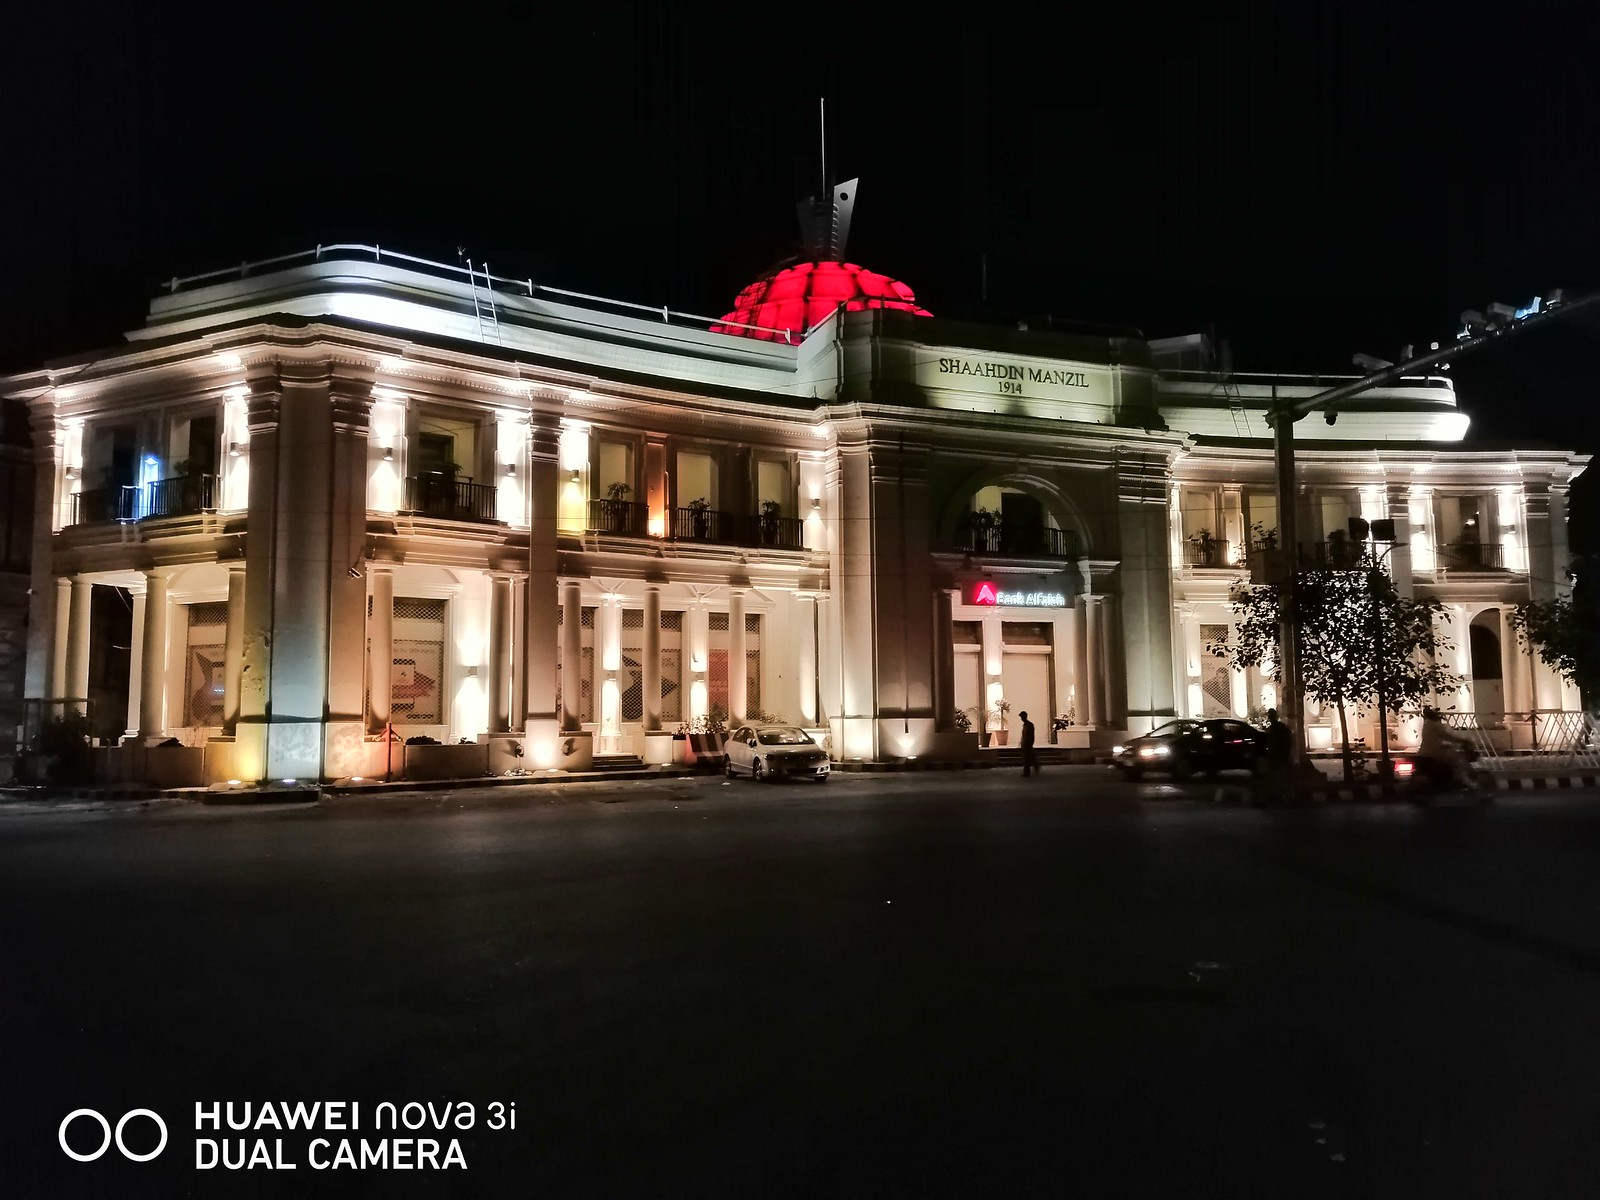 Image of Building With AI Mode at Night With Huawei Nova 3i